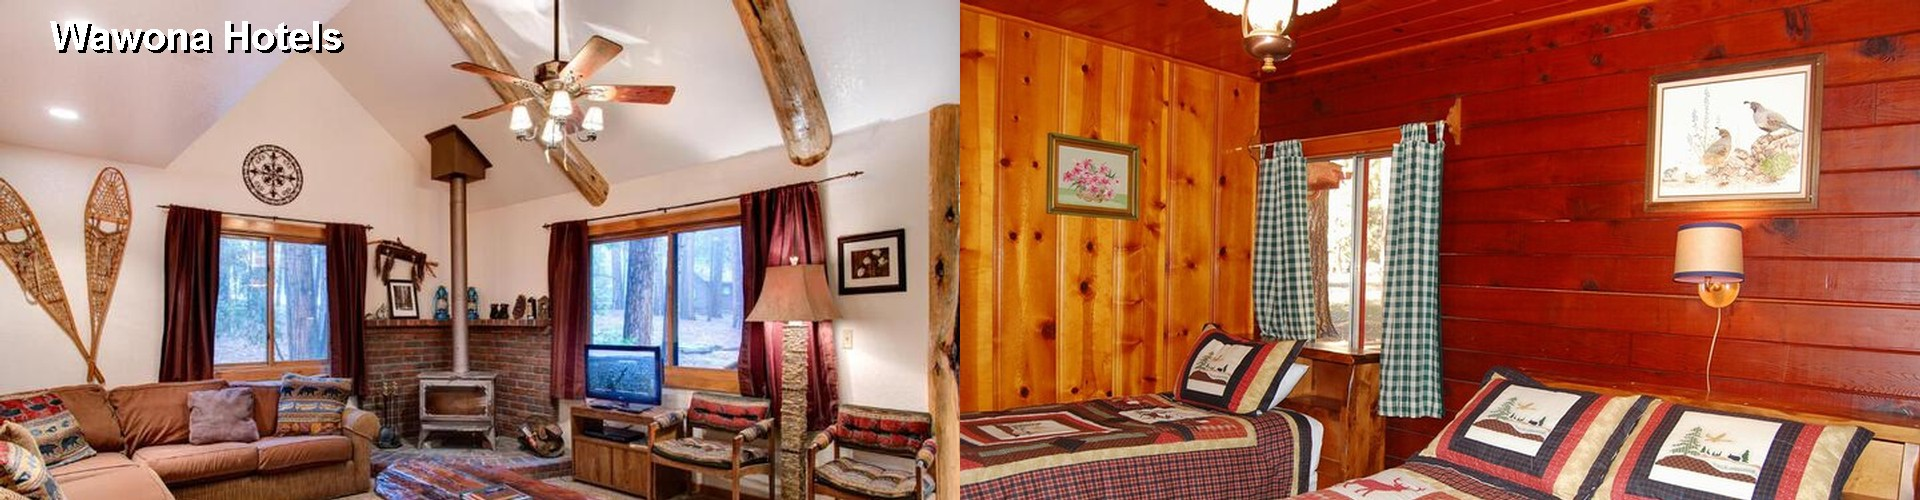 5 Best Hotels near Wawona